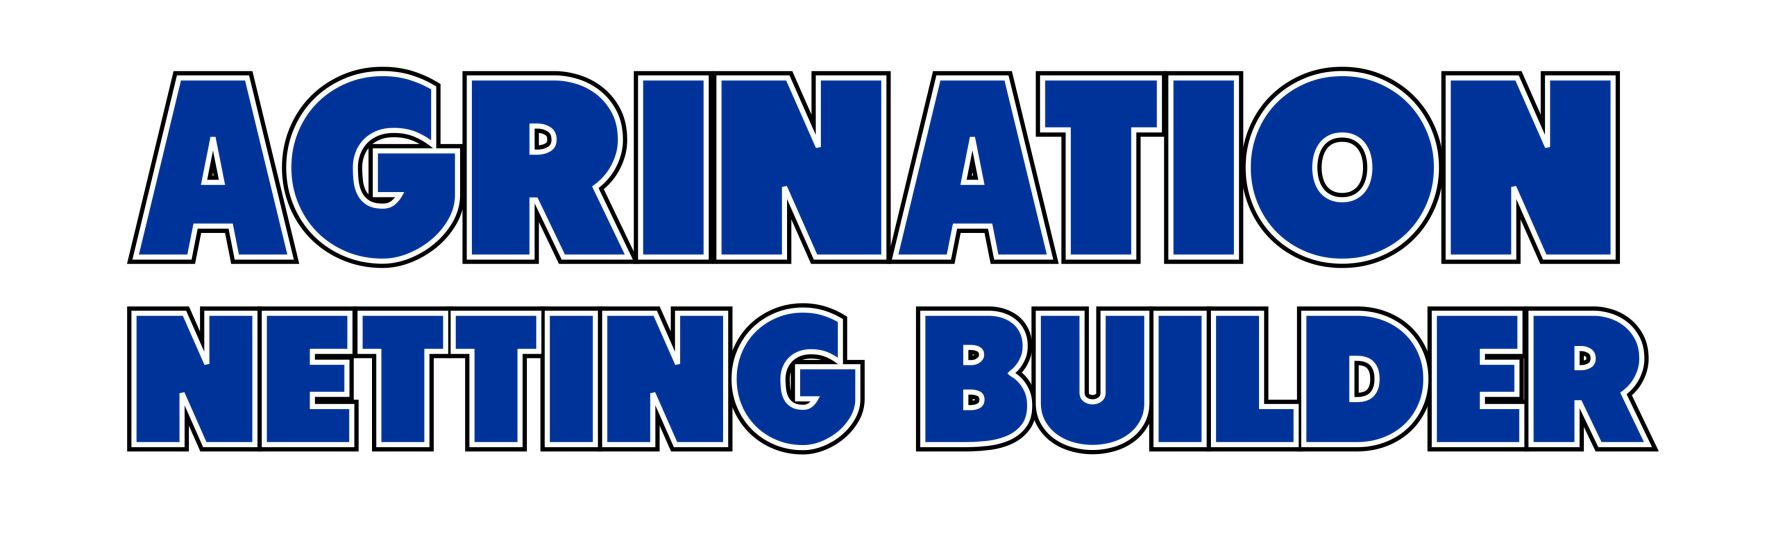 AGRINATION NETTING BUILDER CONTRACTOR